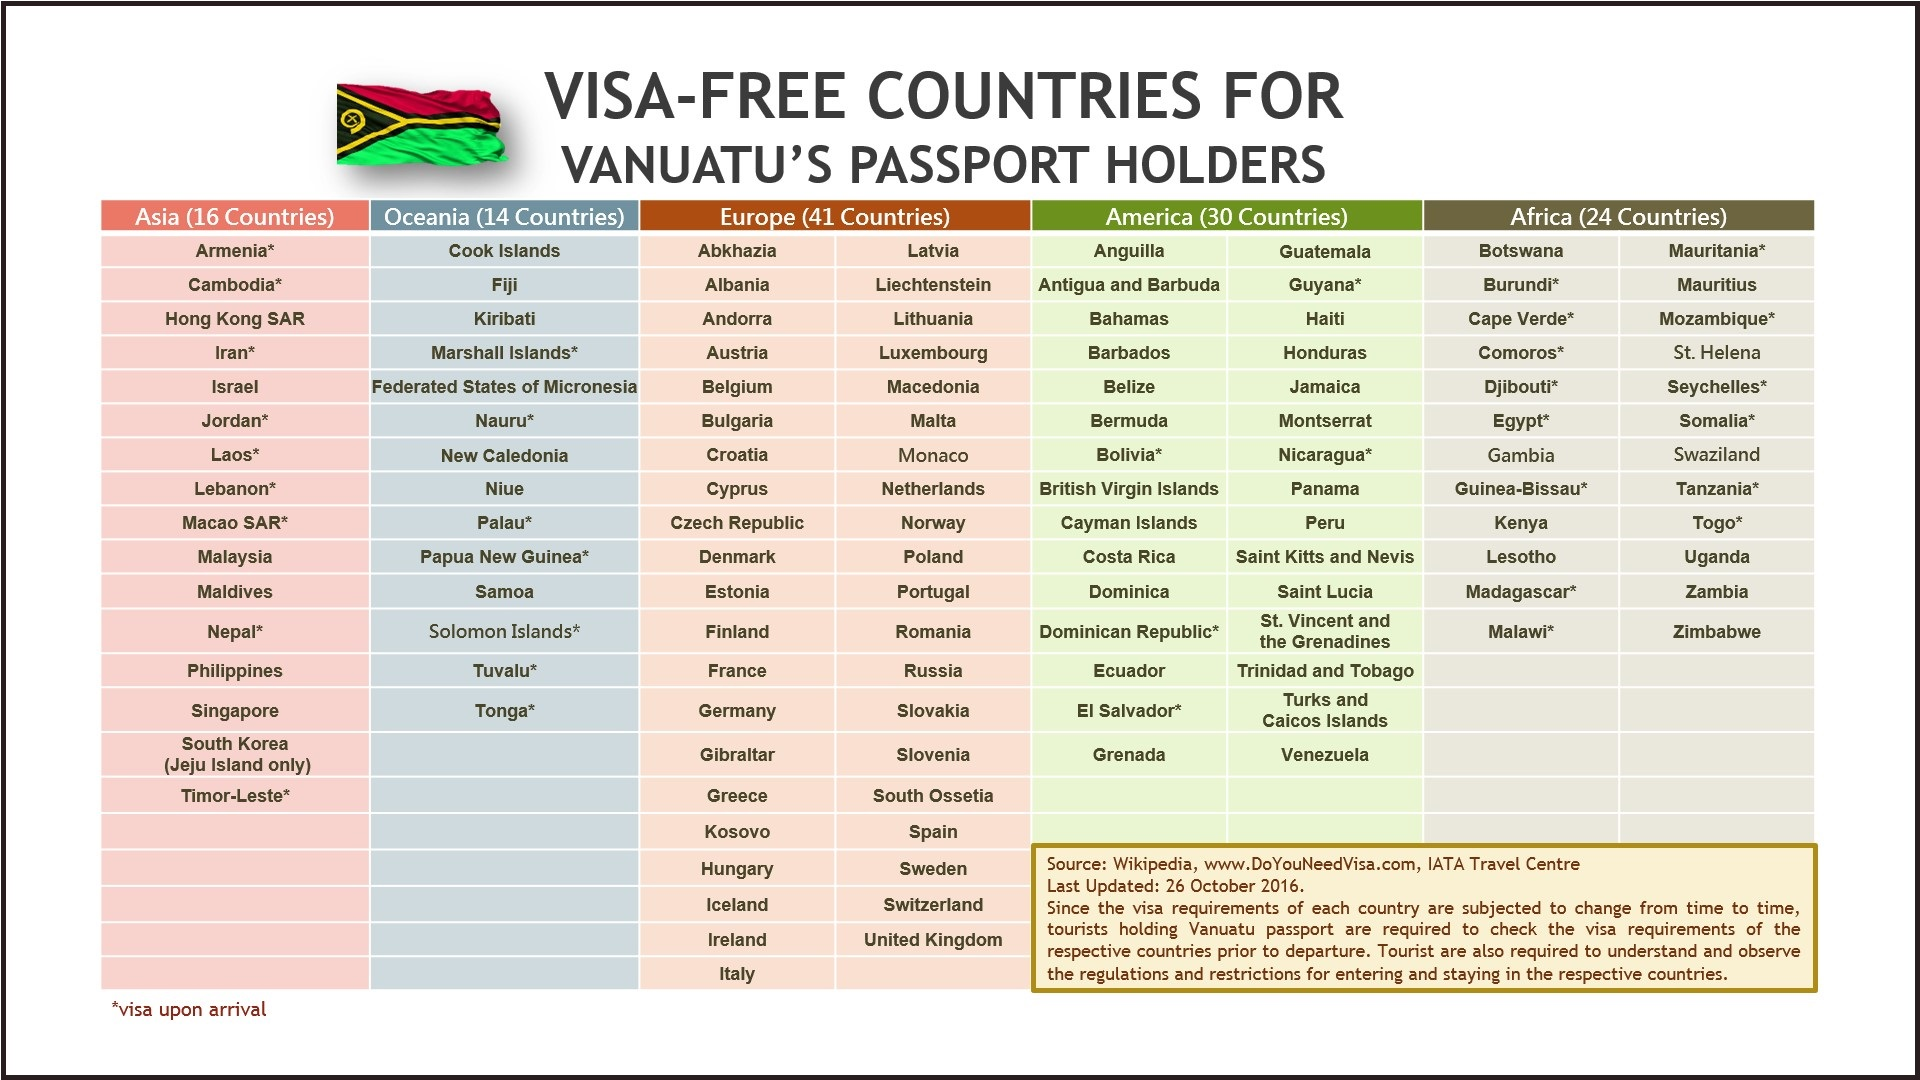 List of Visa Free Countries